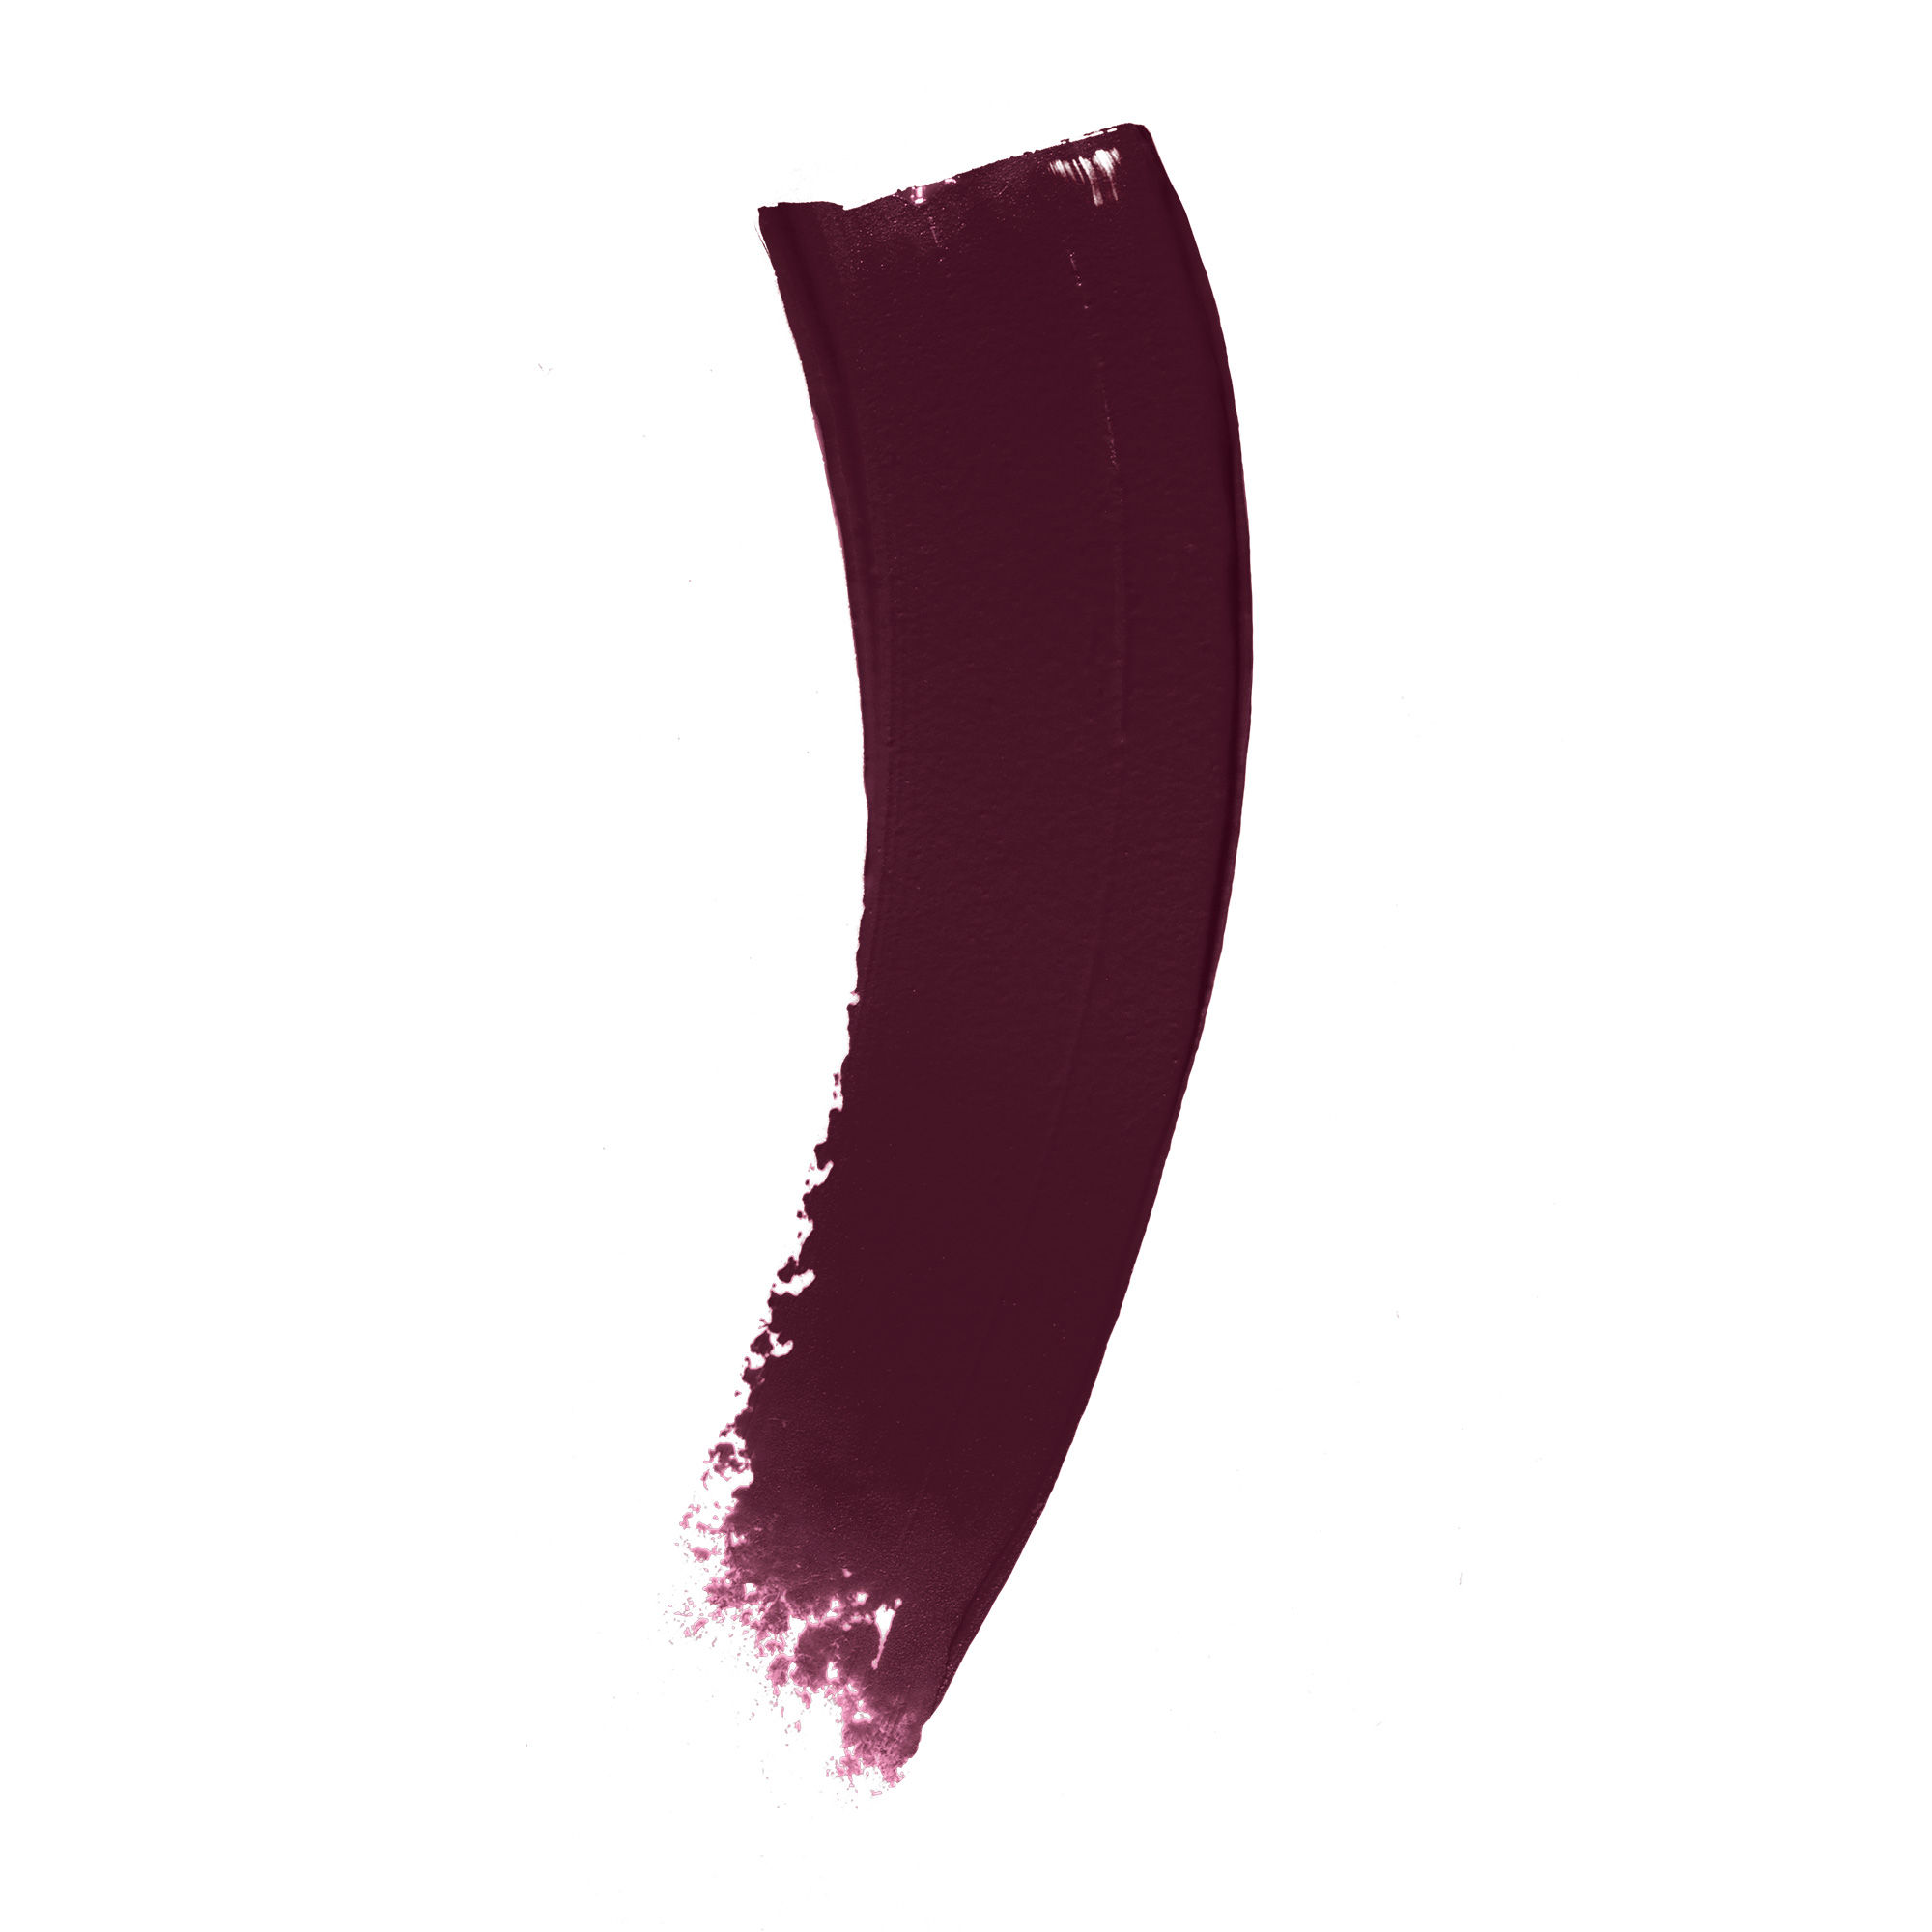 Matte Finish - Plum Role - Dark Plum